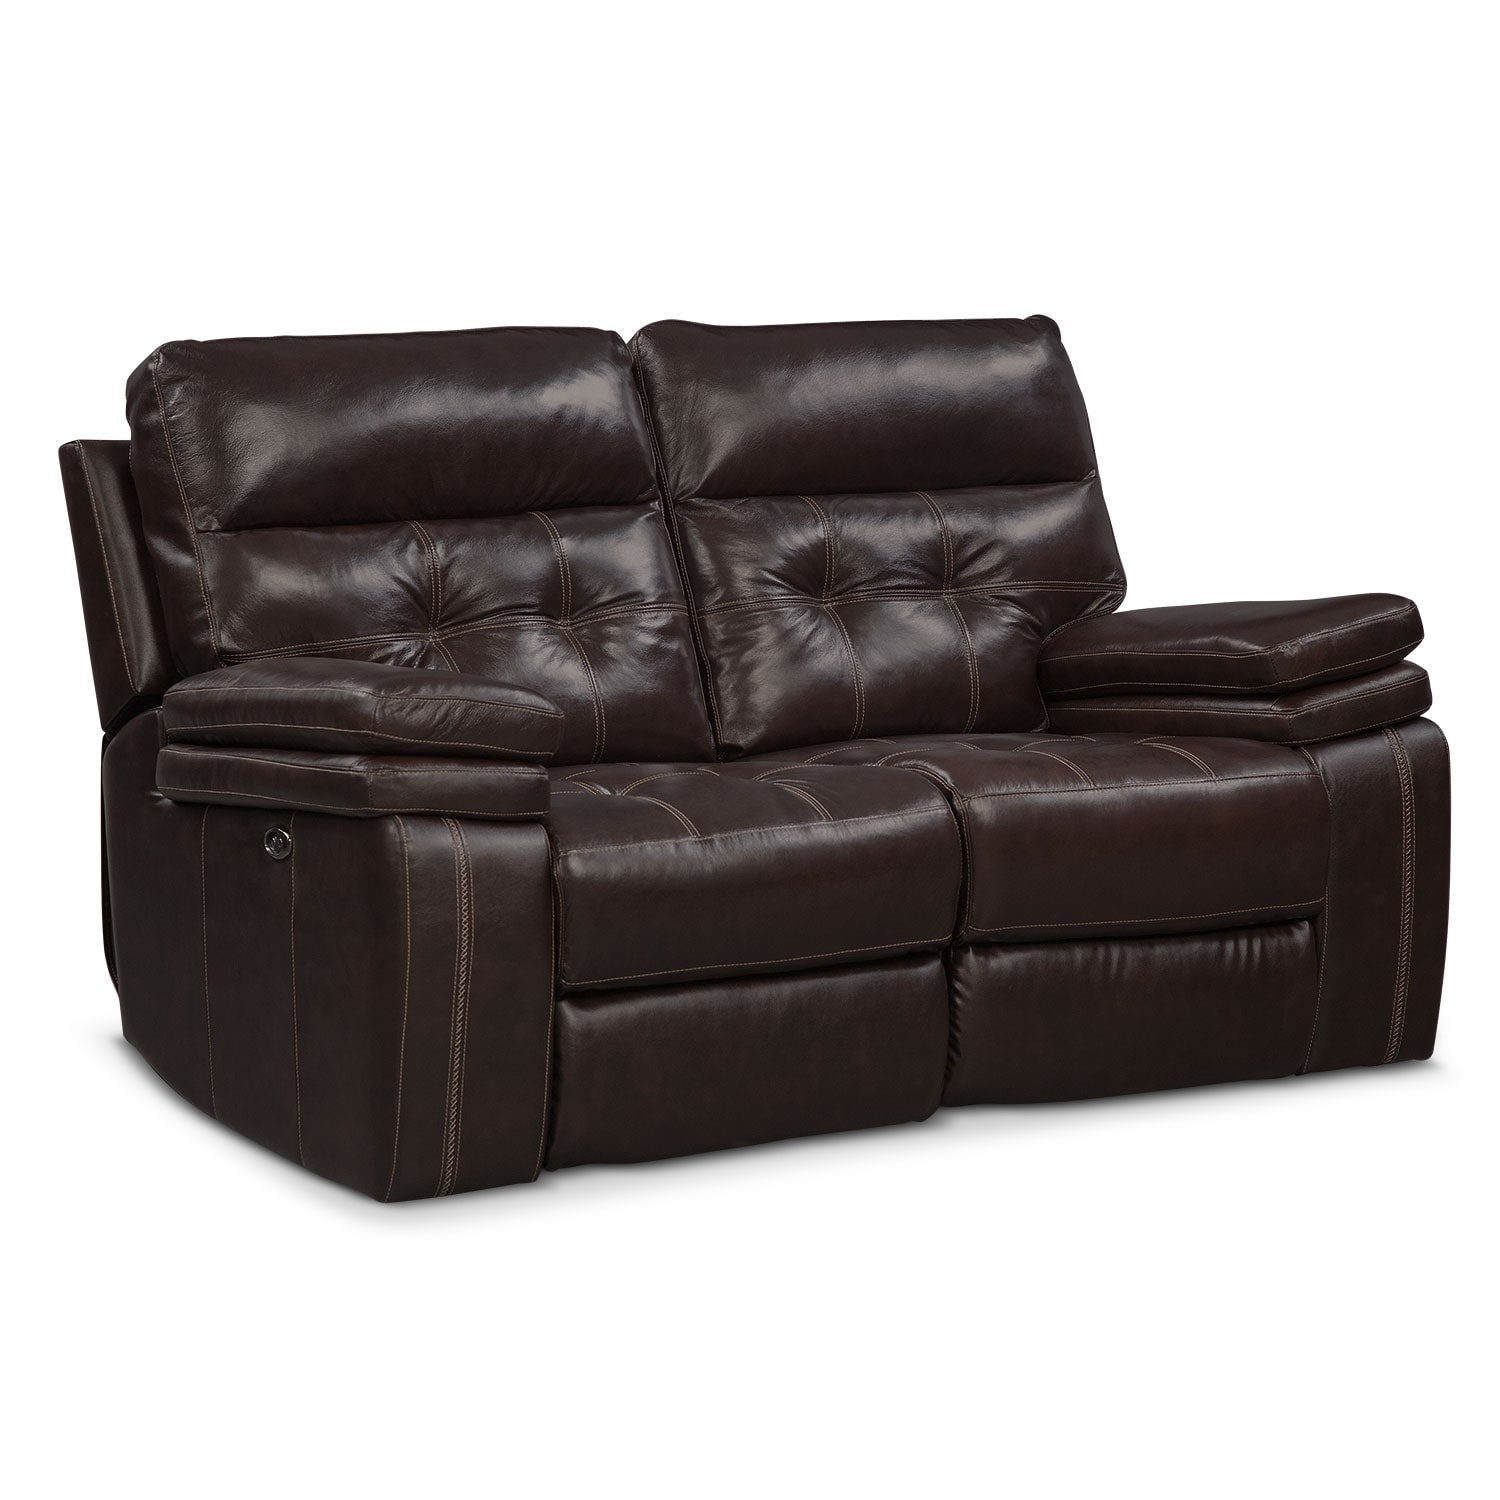 Brisco power reclining sofa and reclining loveseat set brown value city furniture Power loveseat recliner